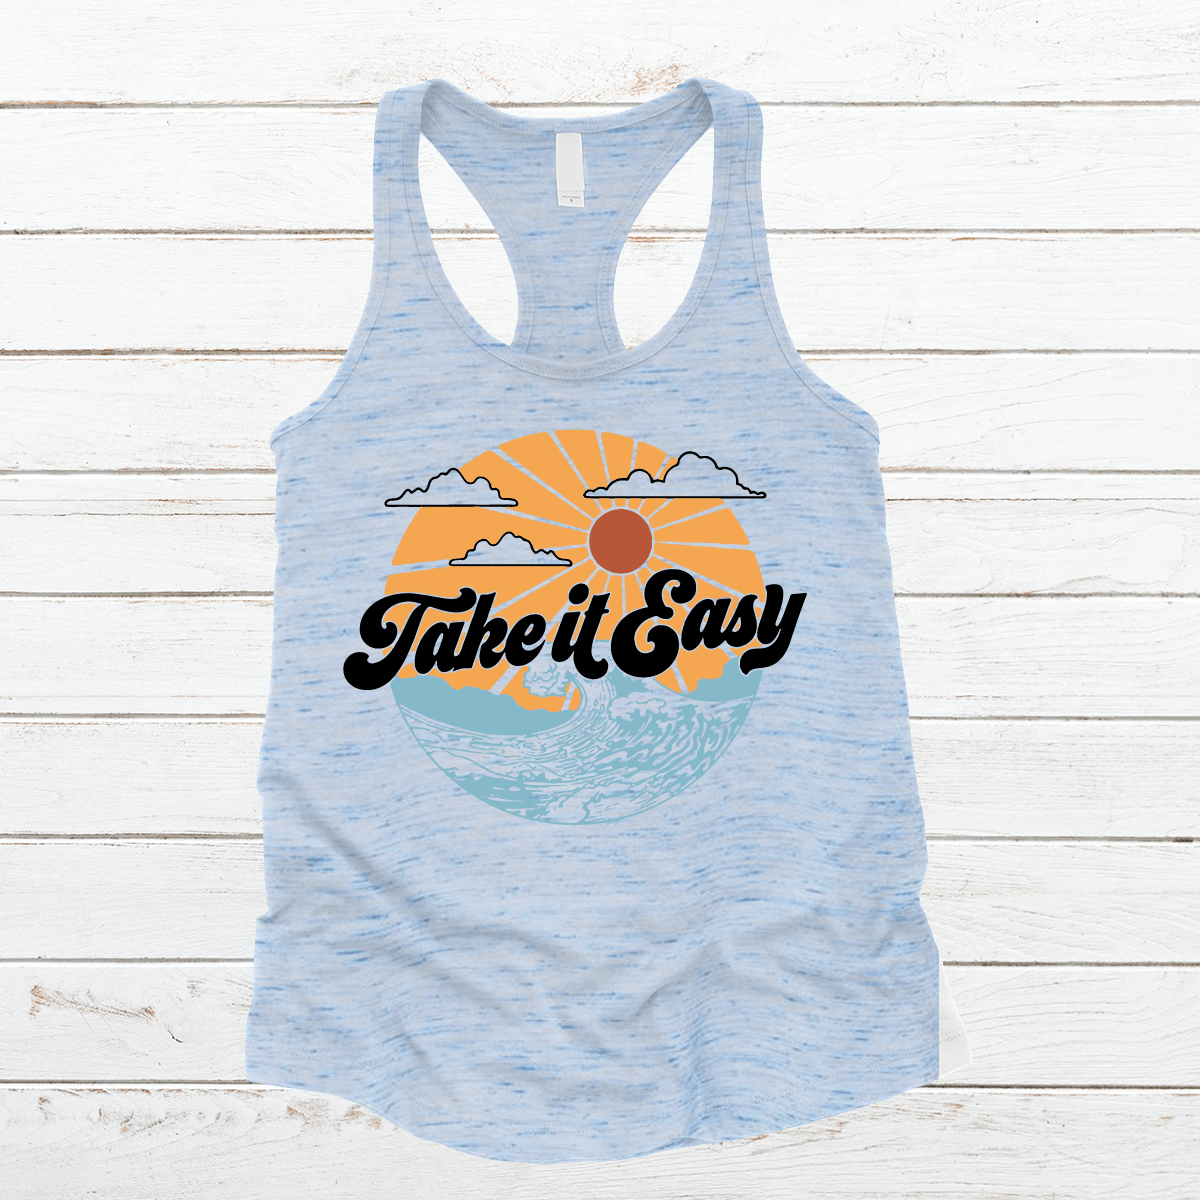 Take It Easy Premium Marble Racerback Tank